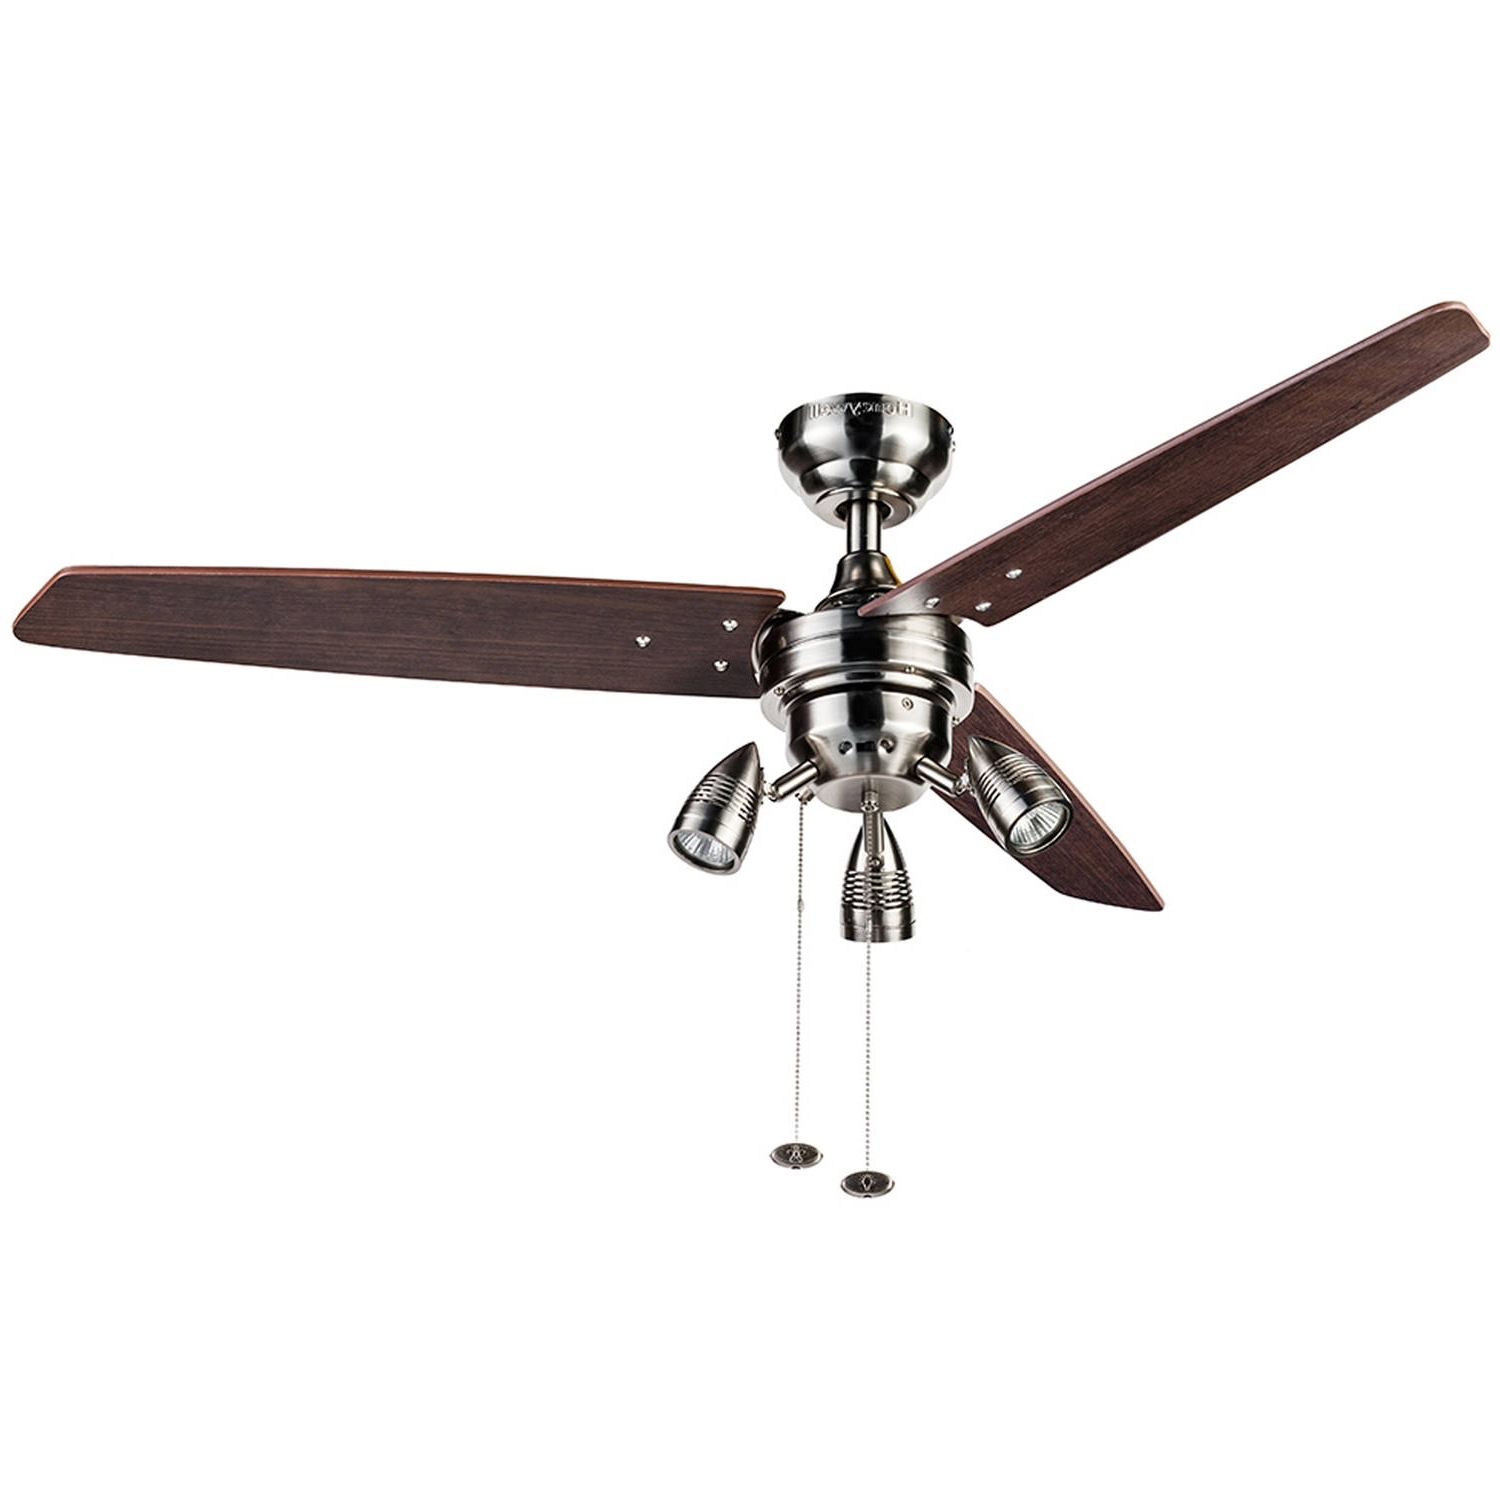 Latest Wicker Outdoor Ceiling Fans With Lights Inside Ceiling: Marvellous Wicker Ceiling Fans Design Coastal Style Ceiling (View 10 of 20)